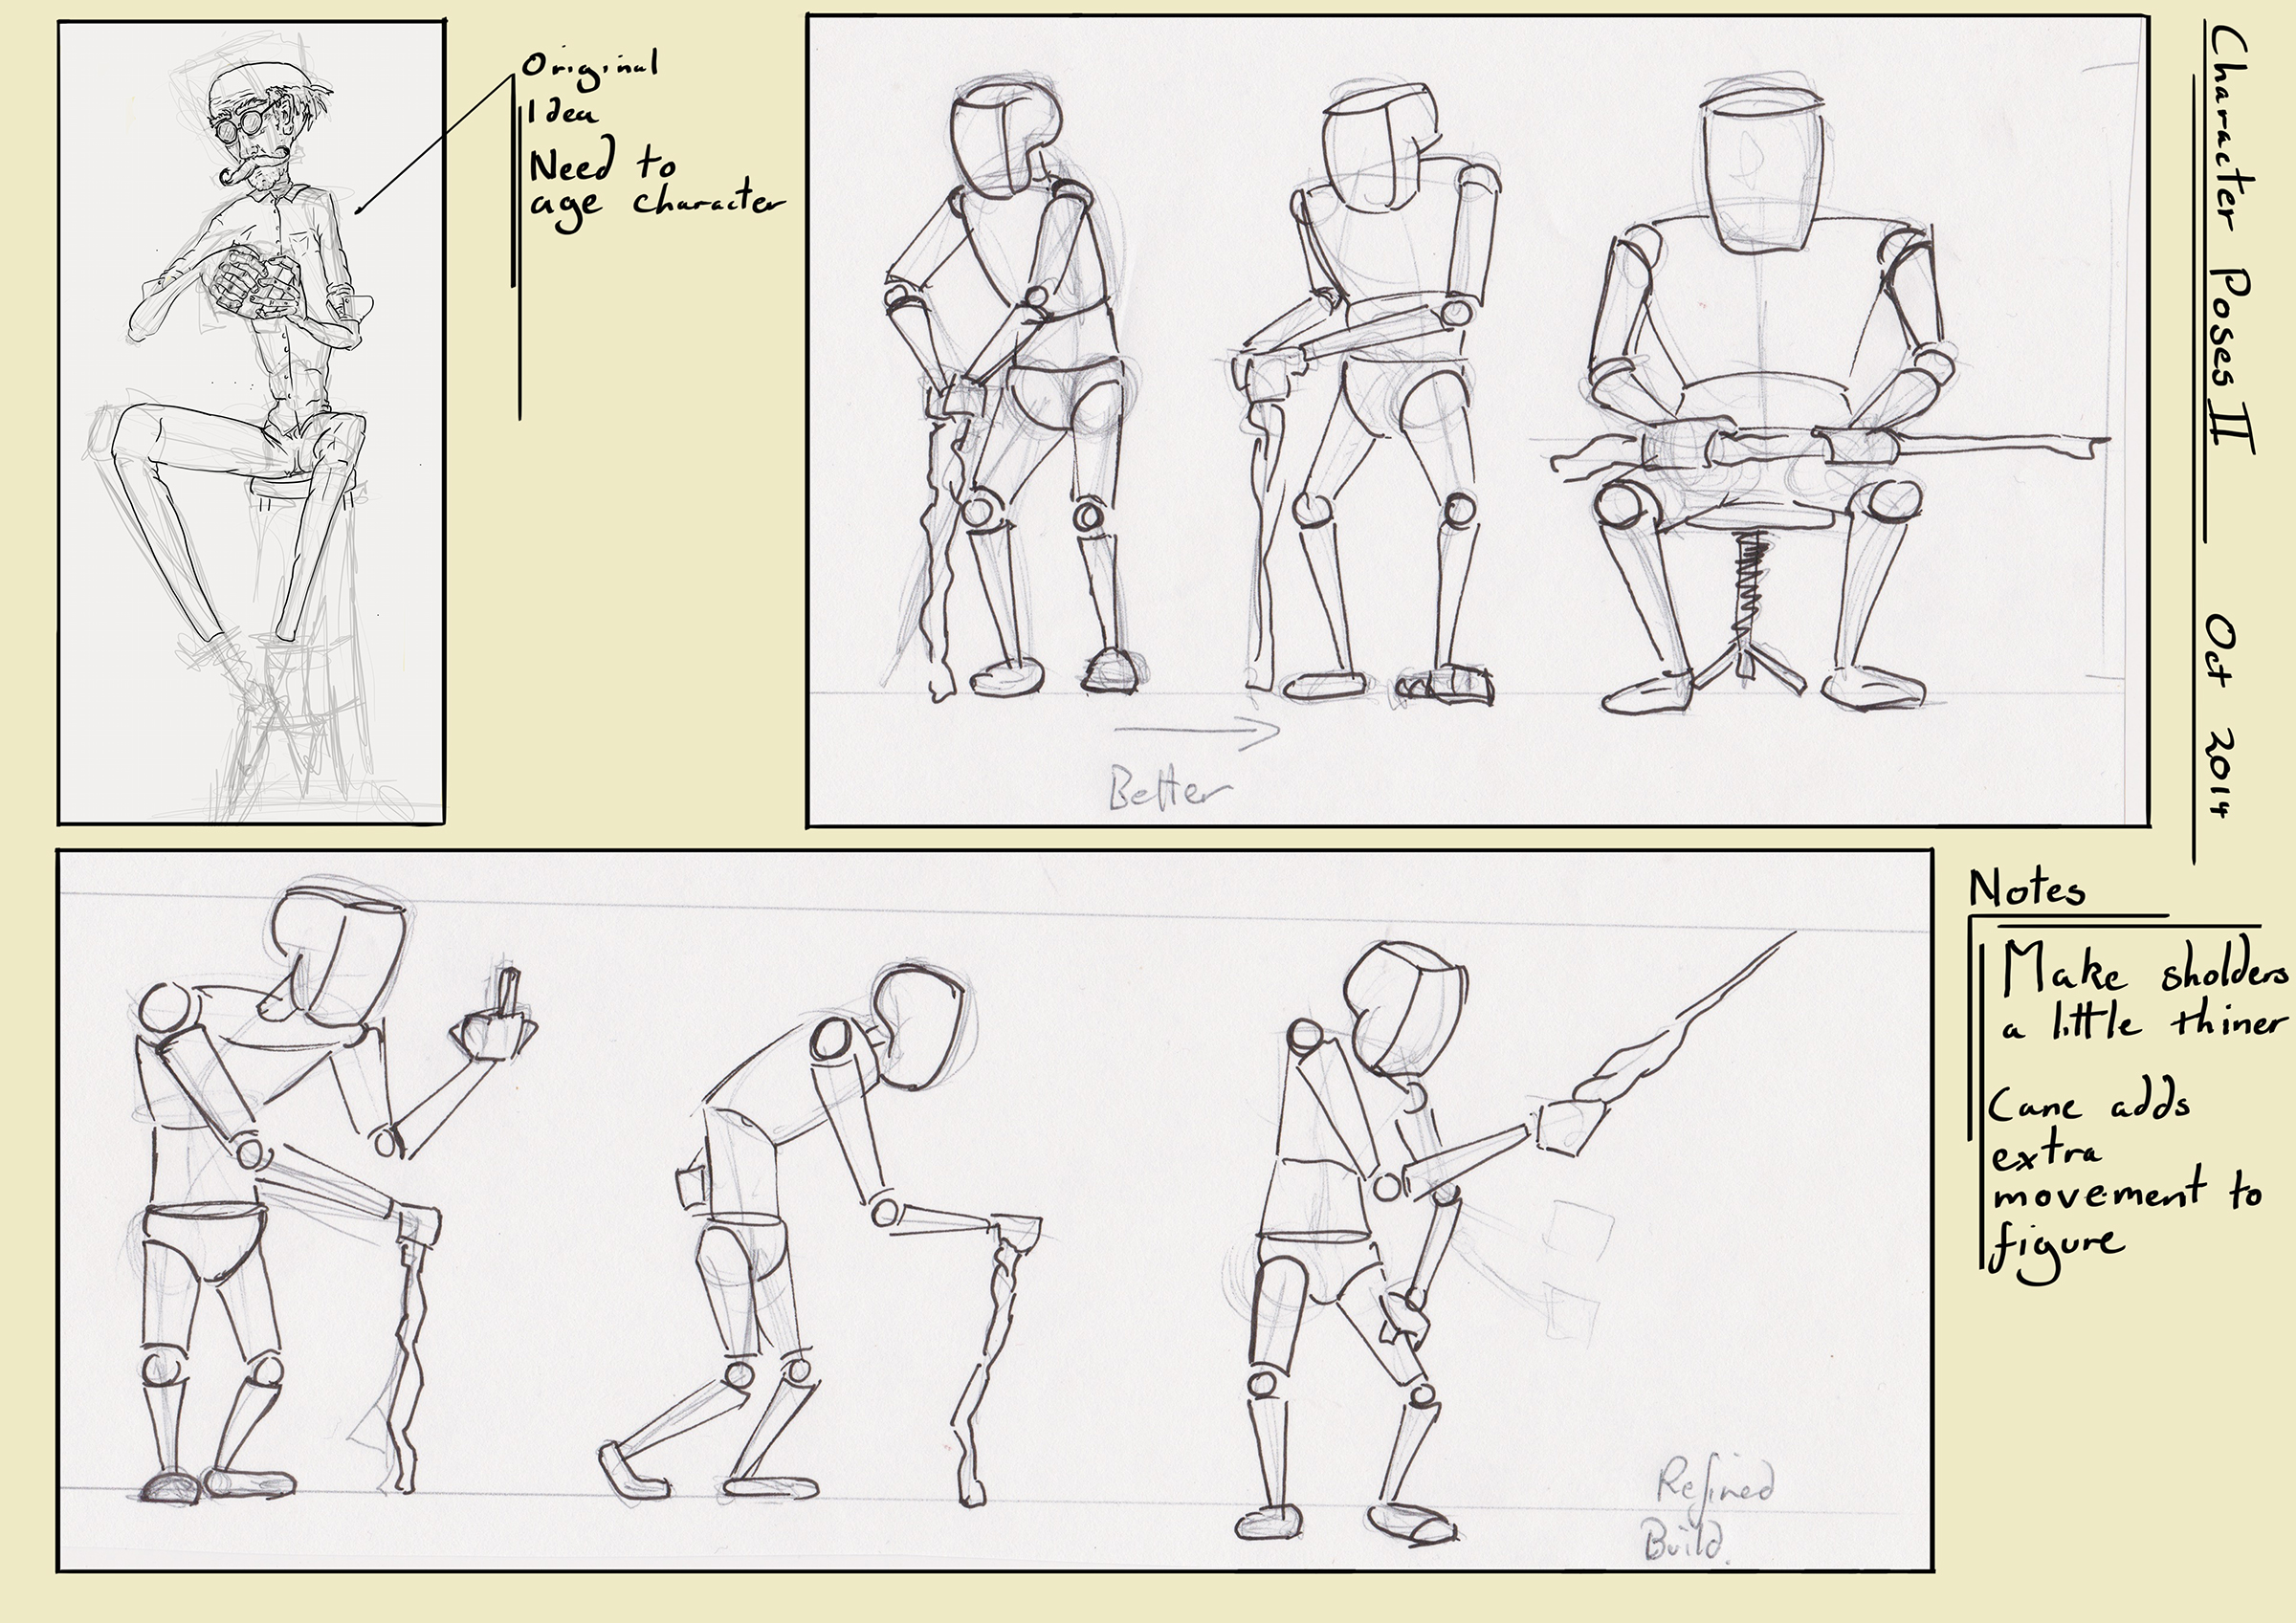 Fleshed out poses